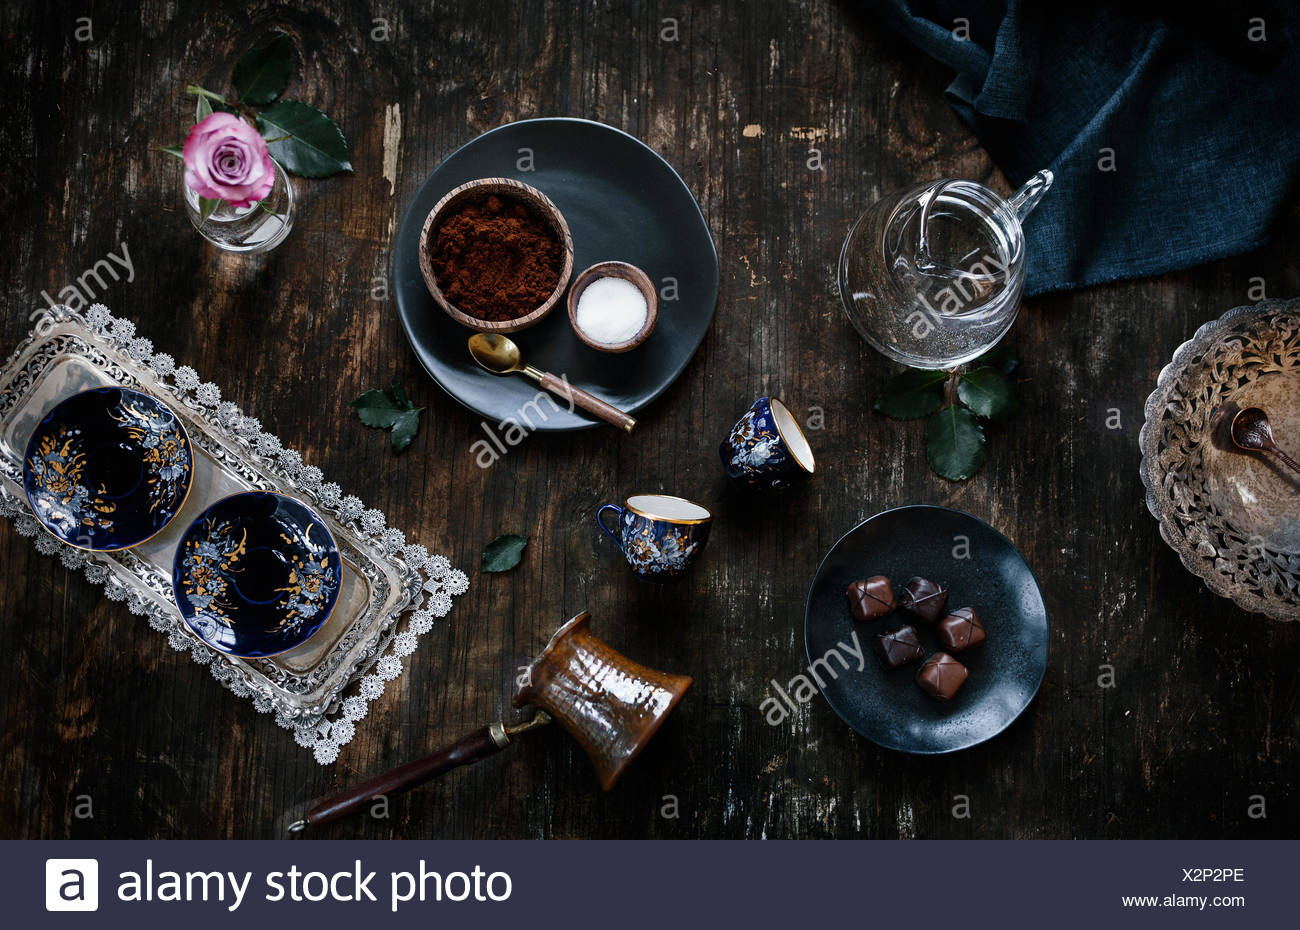 Ingredients for Turkish Coffee (coffee, sugar, water), coffee cups and traditional coffee pot are displayed on a reclaimed wood - Stock Image